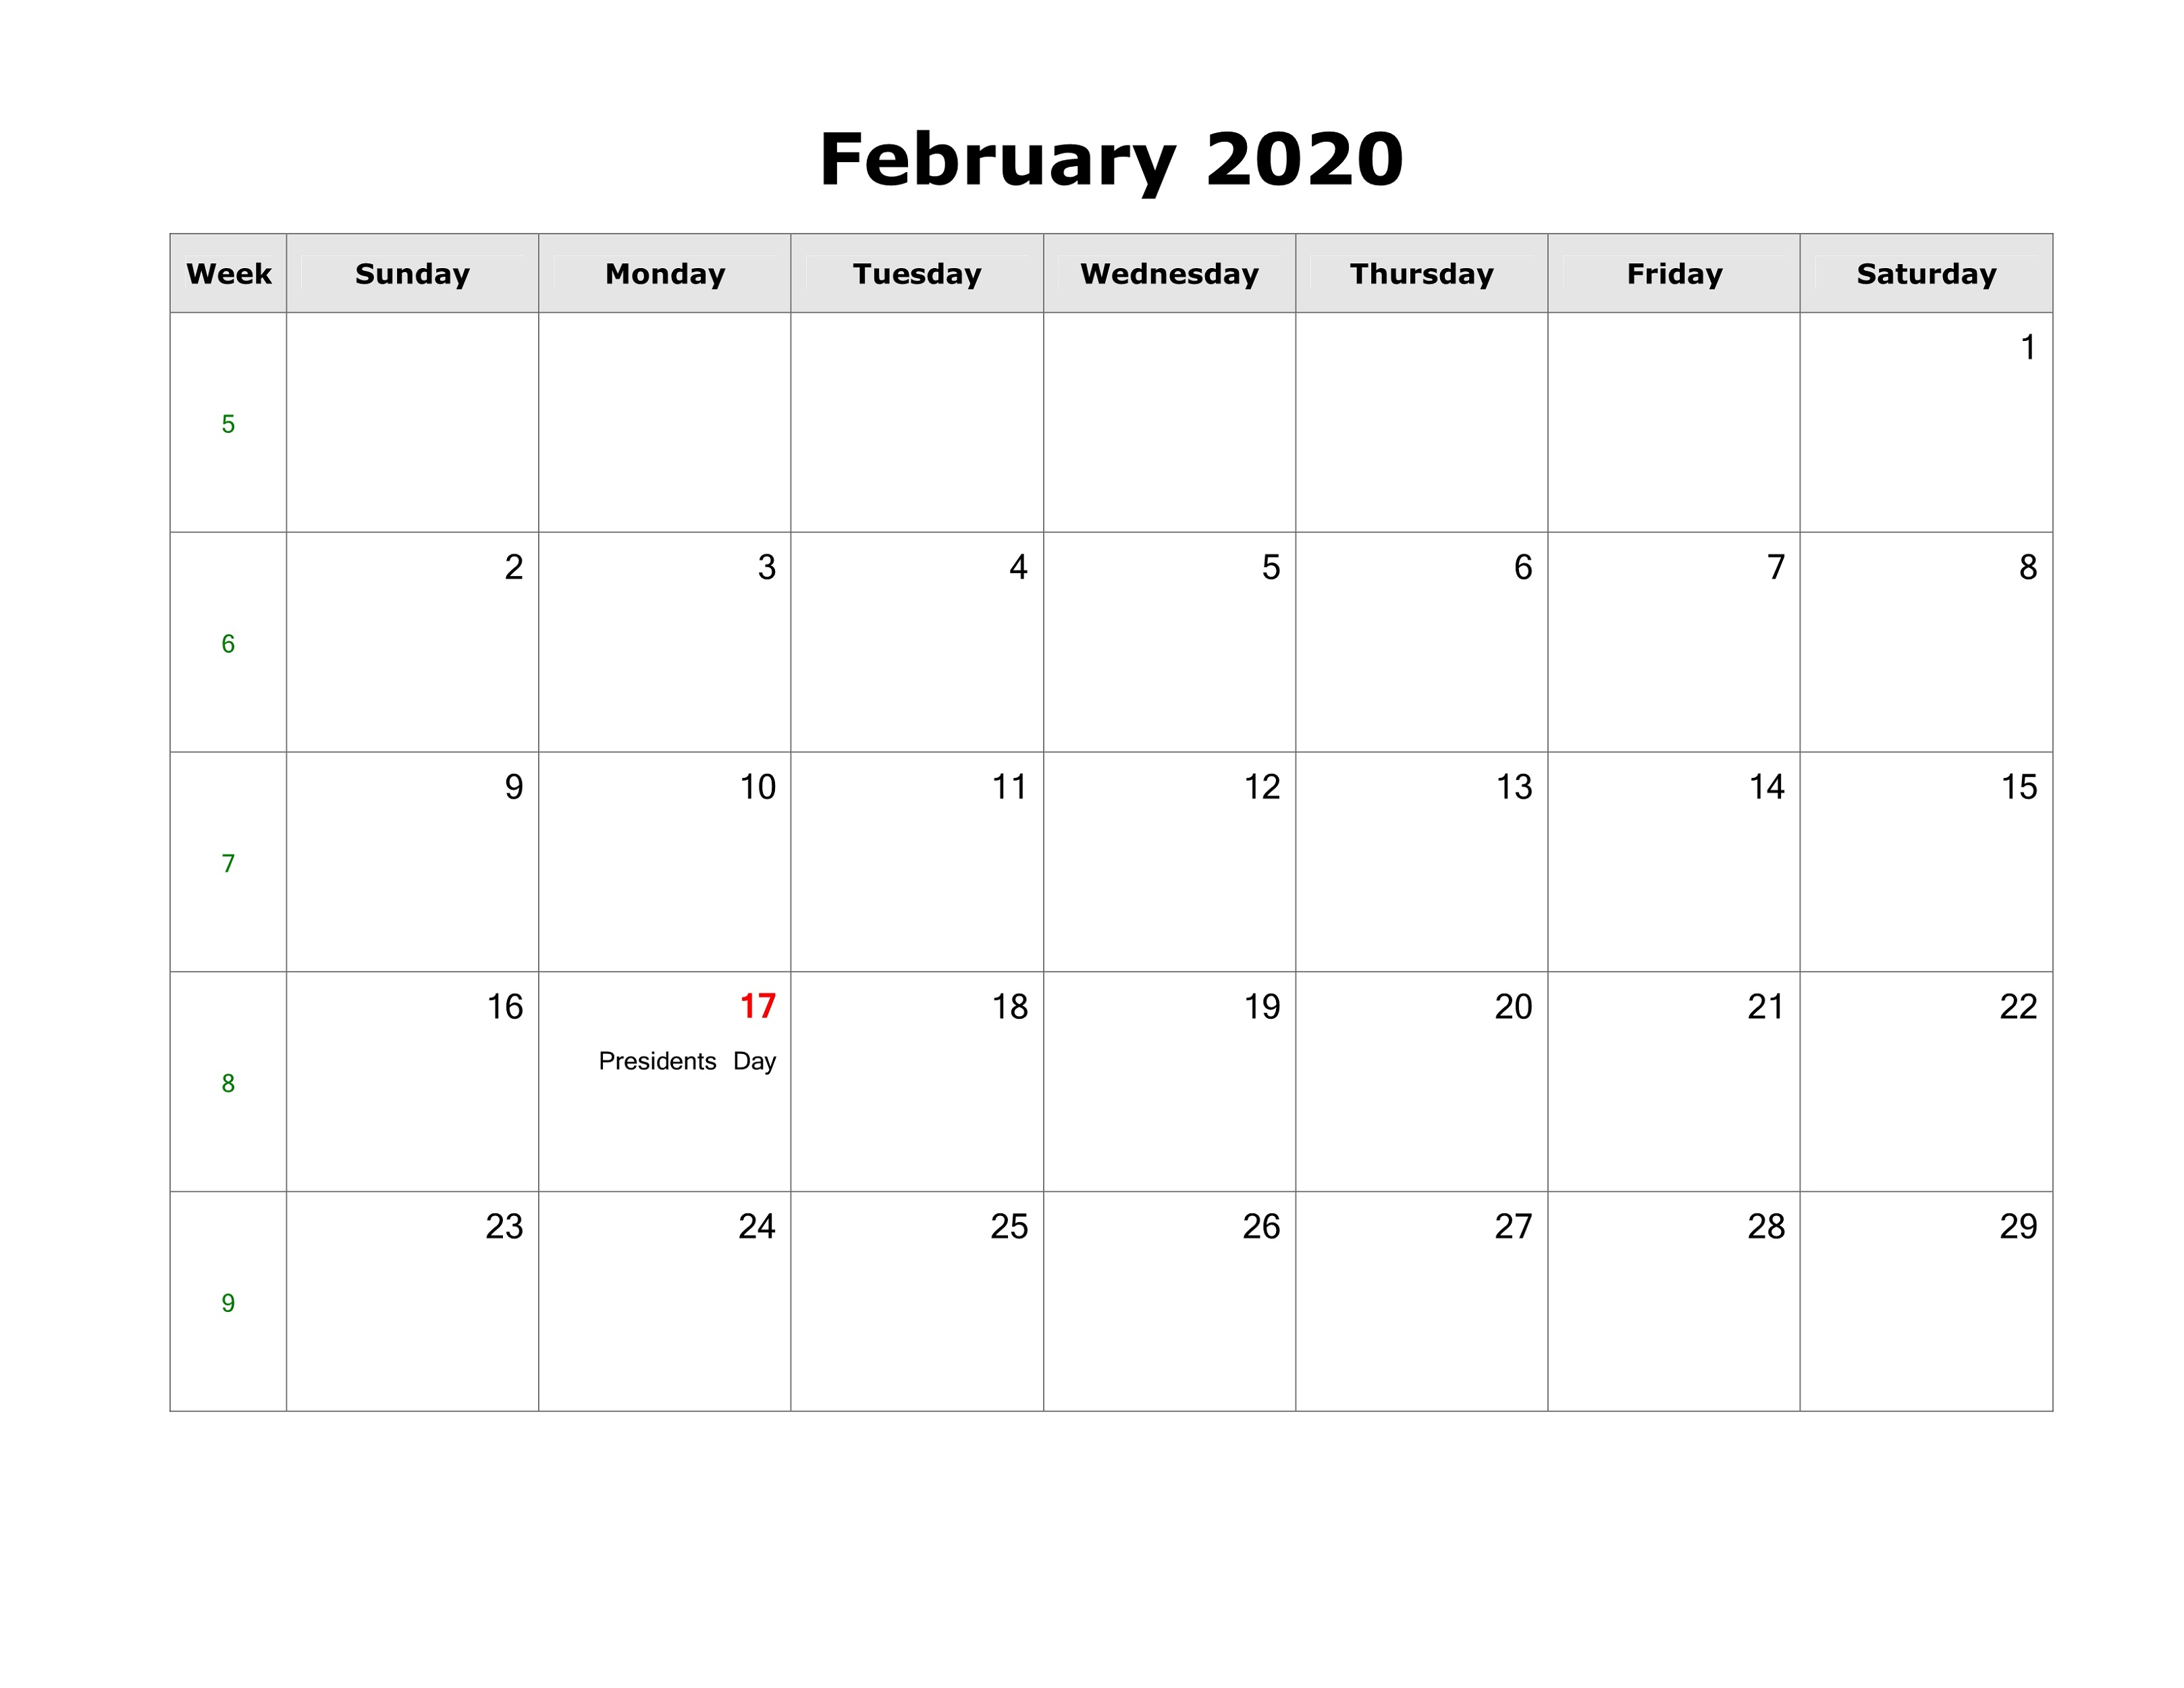 2020 Holiday Calendar Blank For Quick Usage | Calendar Shelter